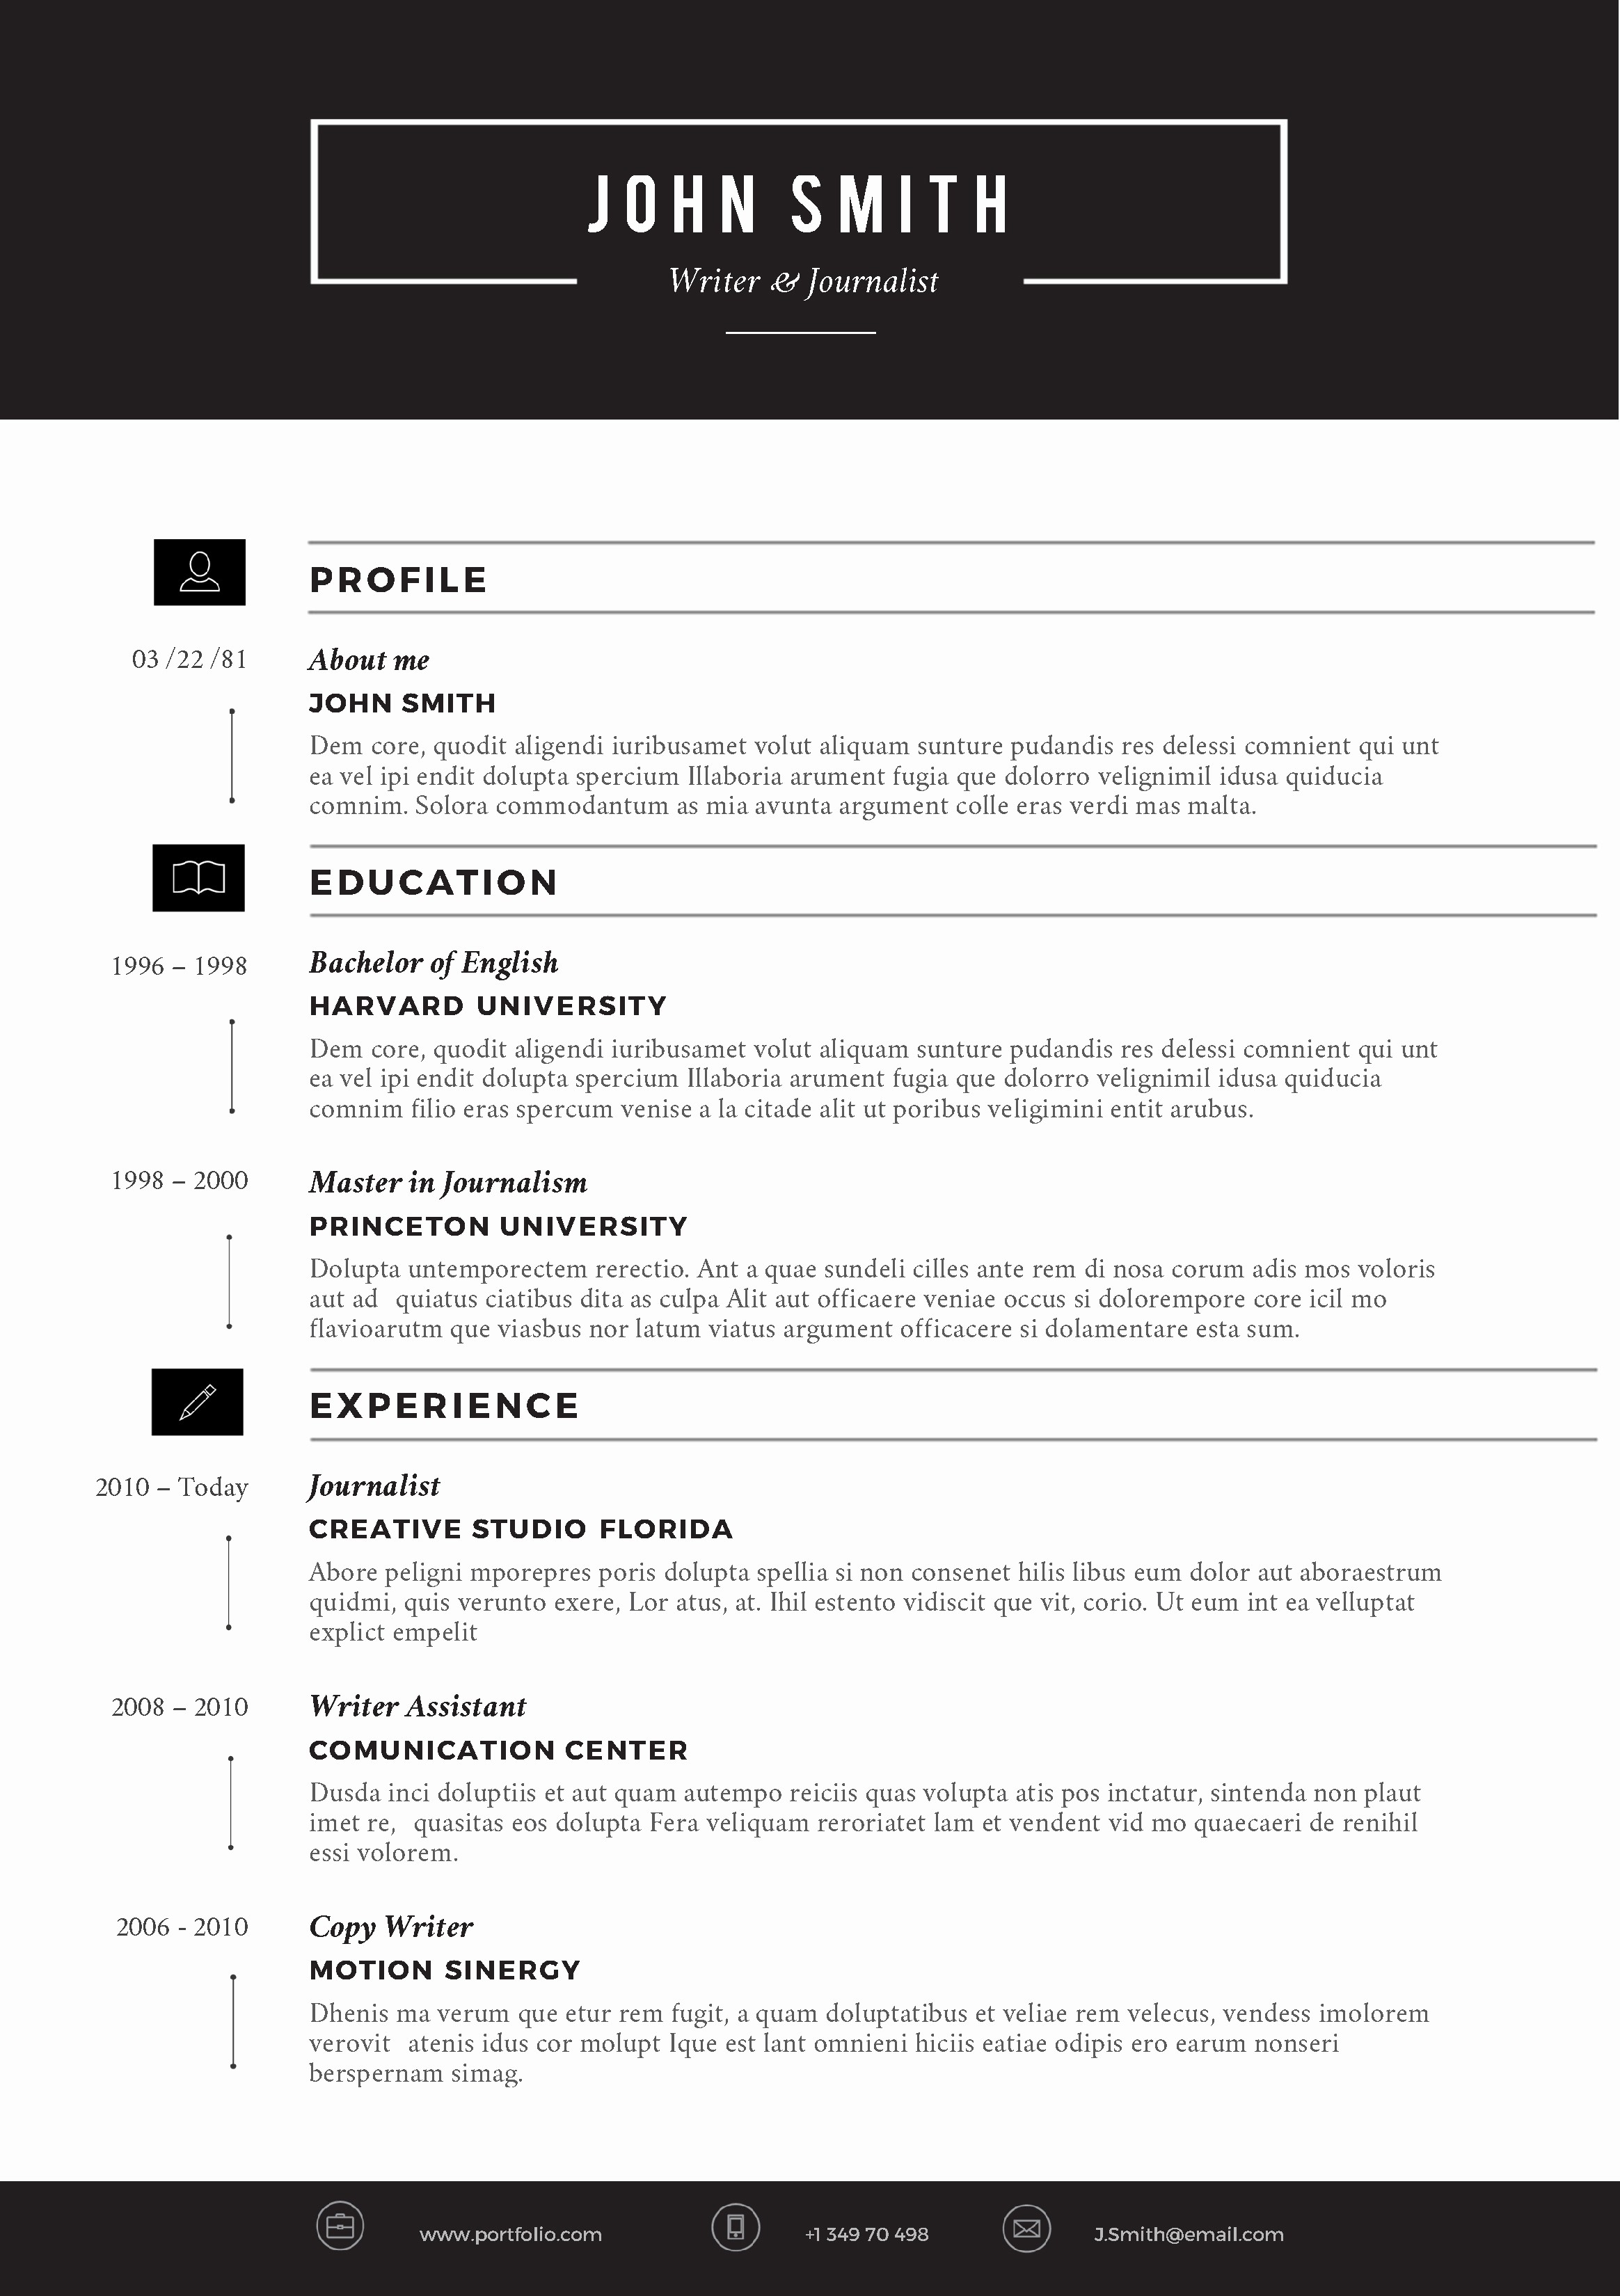 Resume format In Microsoft Word Beautiful Cvfolio Best 10 Resume Templates for Microsoft Word